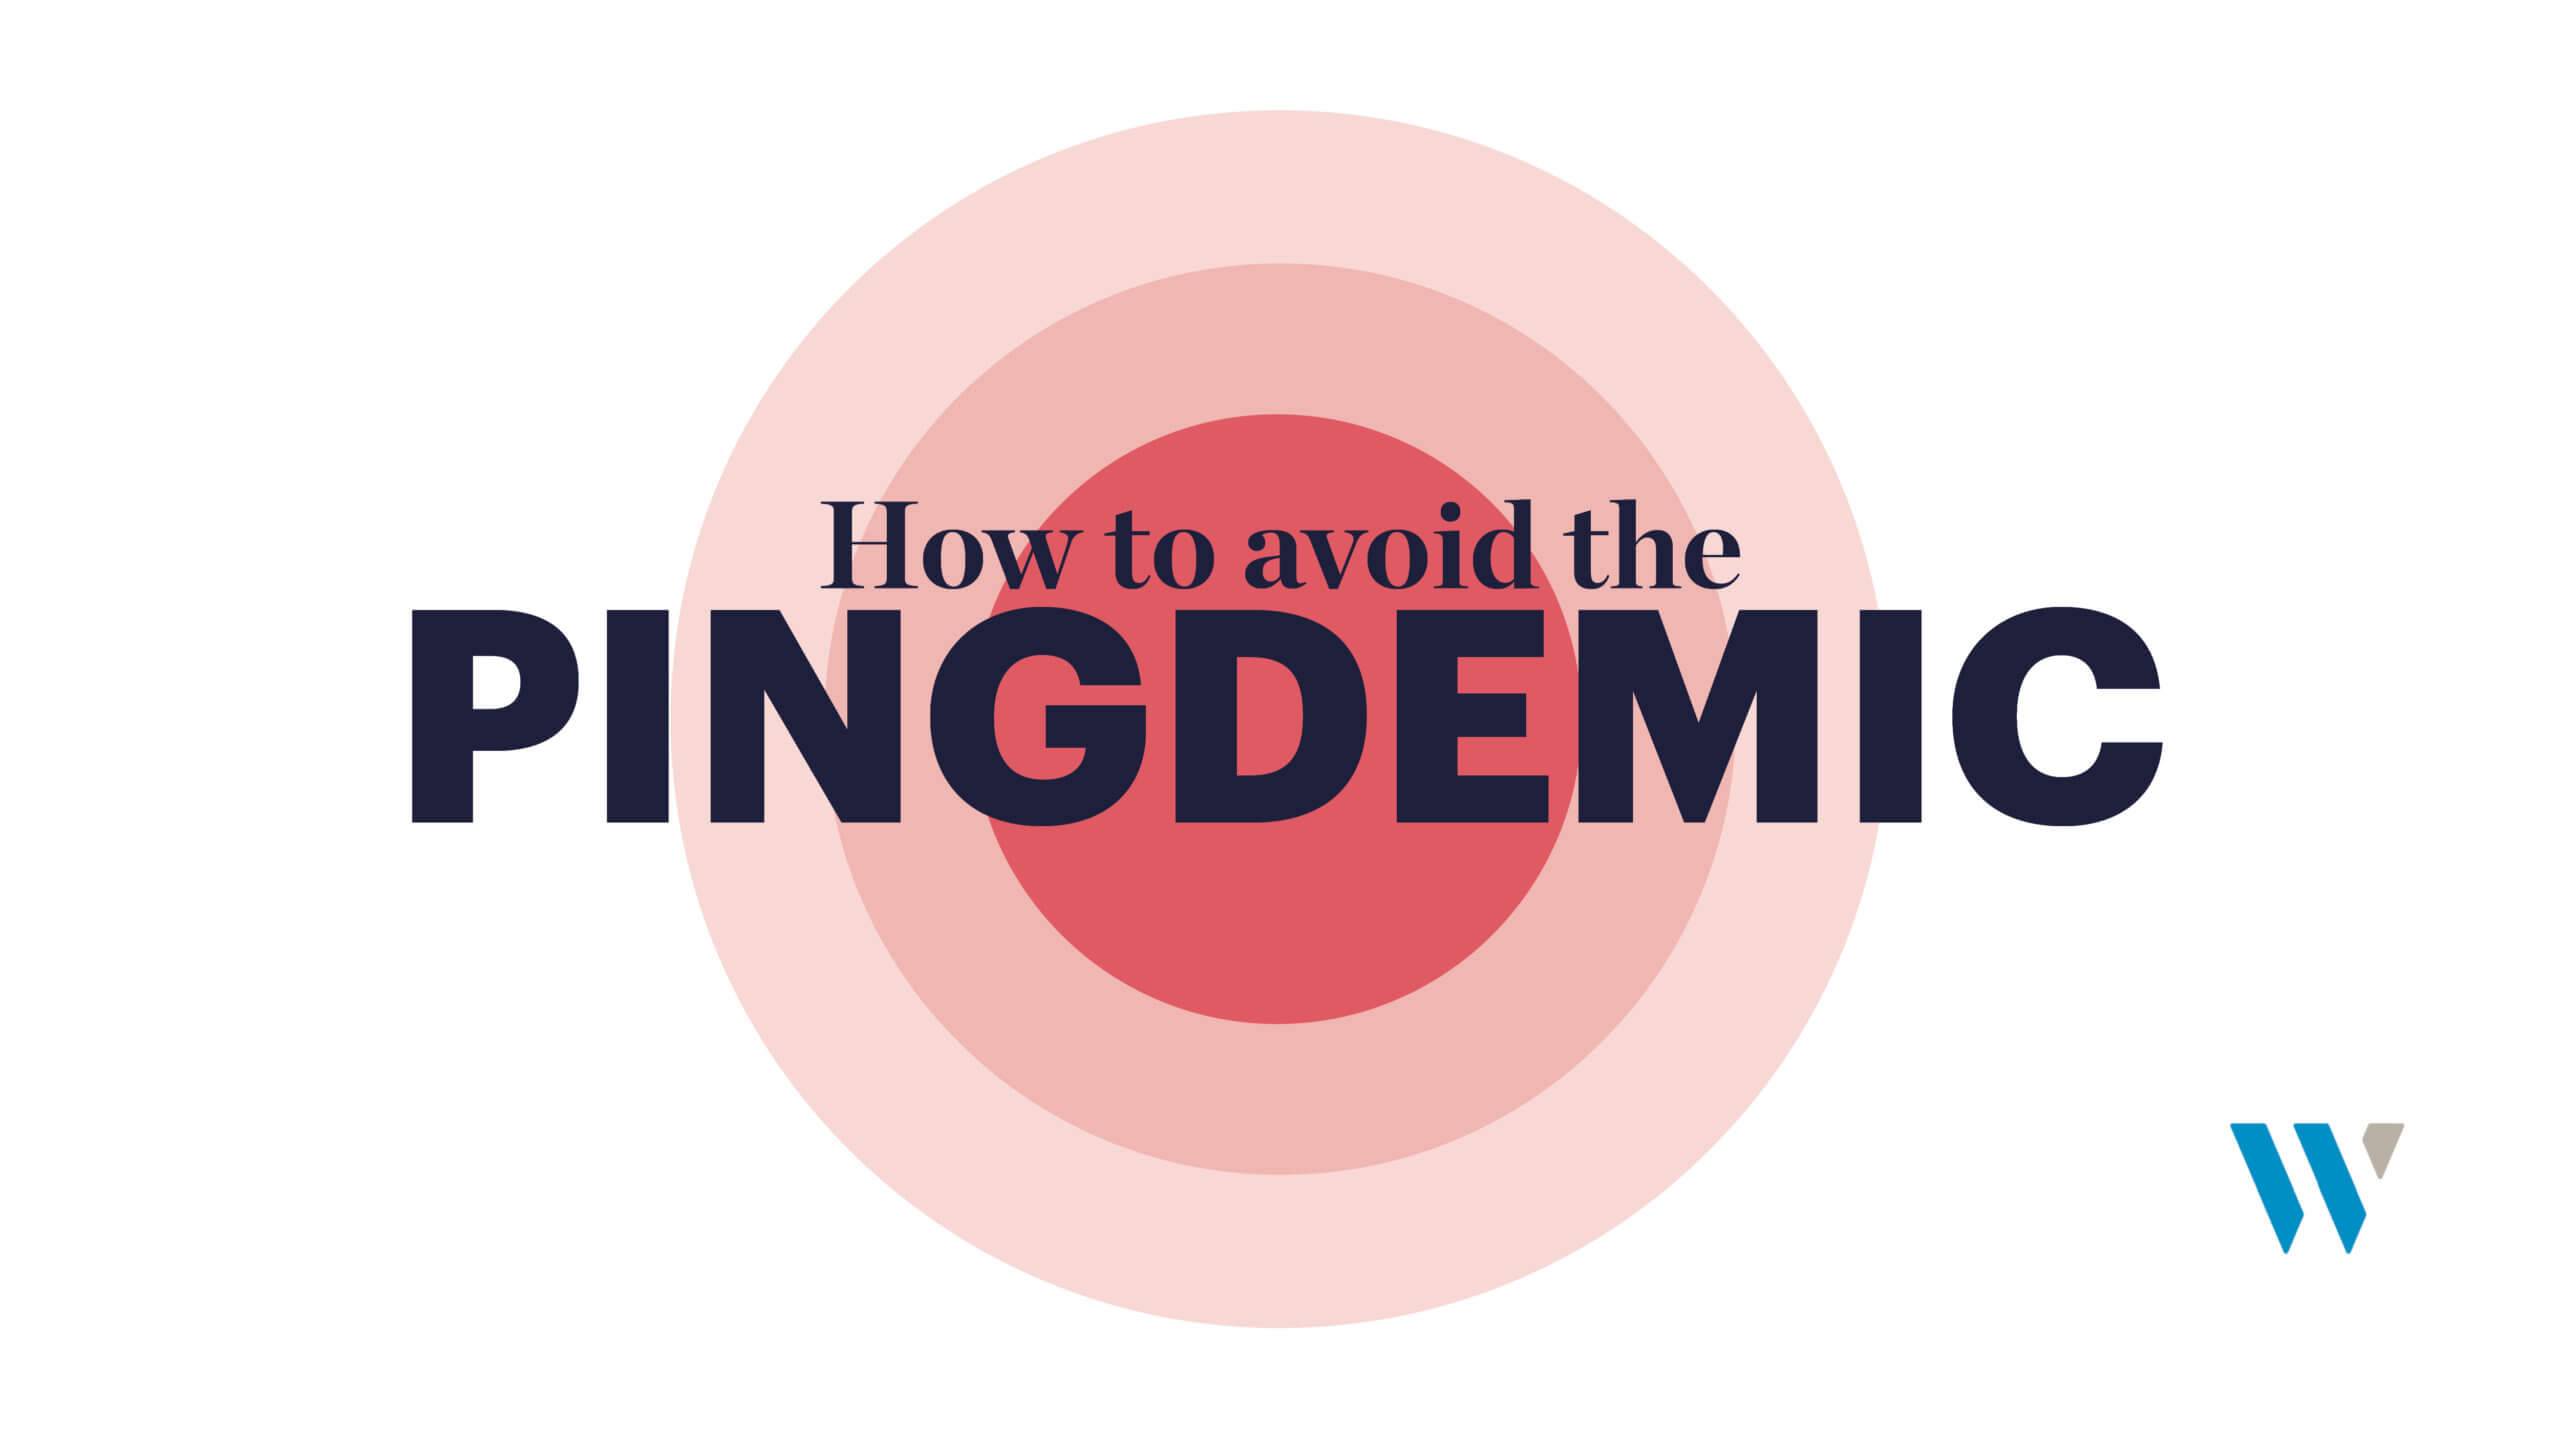 How to avoid the Pingdemic